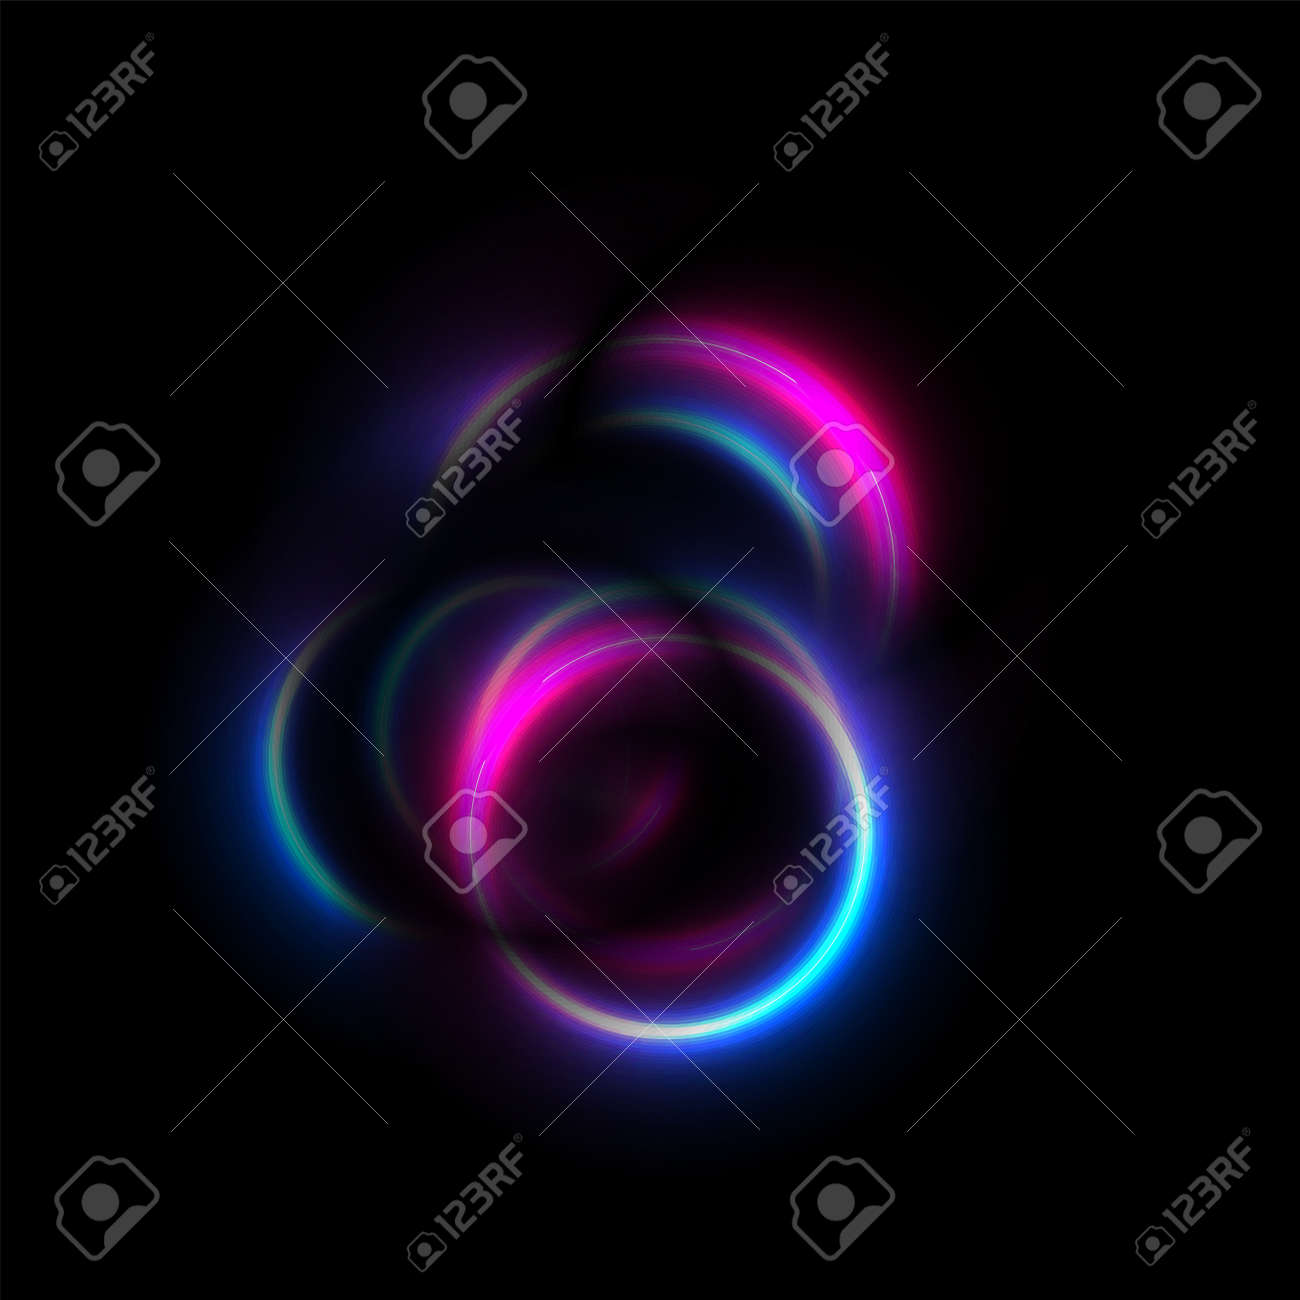 Blue and purple neon glowing smooth circles abstract background. Vector futuristic design - 169500892